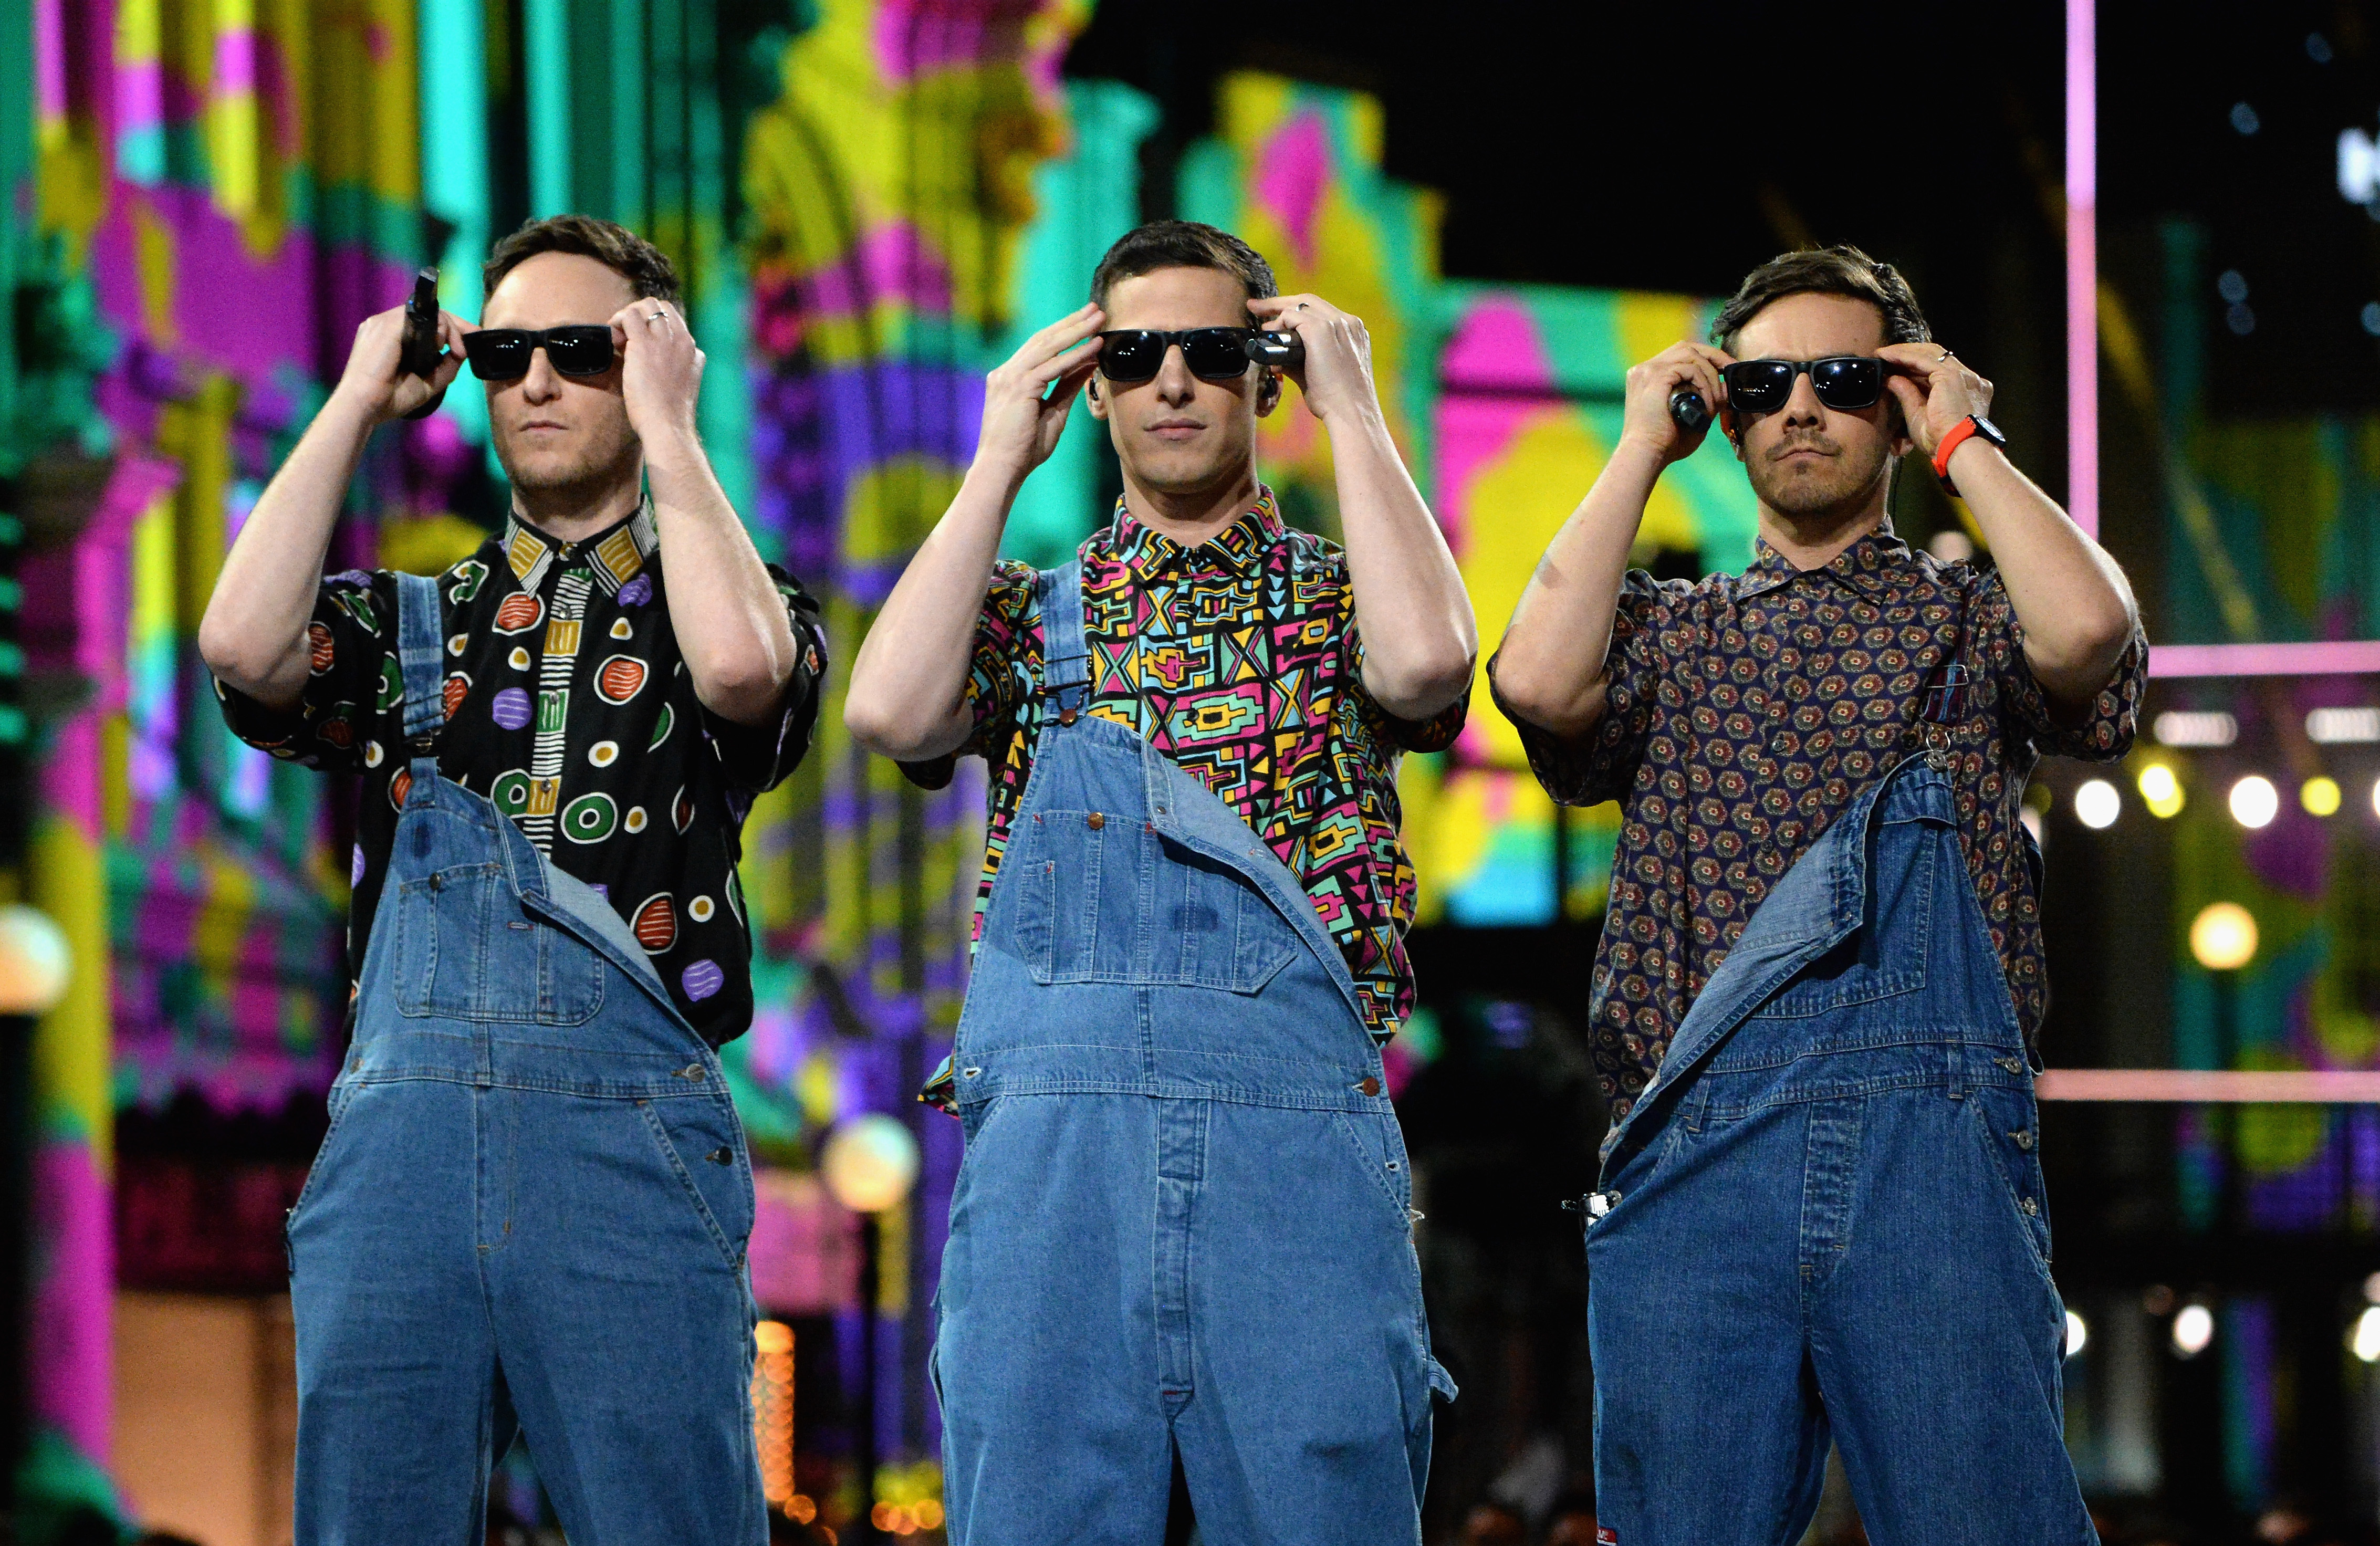 Akiva Schaffer, Andy Samberg and Jorma Taccone of The Lonely Island perform onstage during the 2016 MTV Movie Awards in Burbank, California on April 9, 2016.